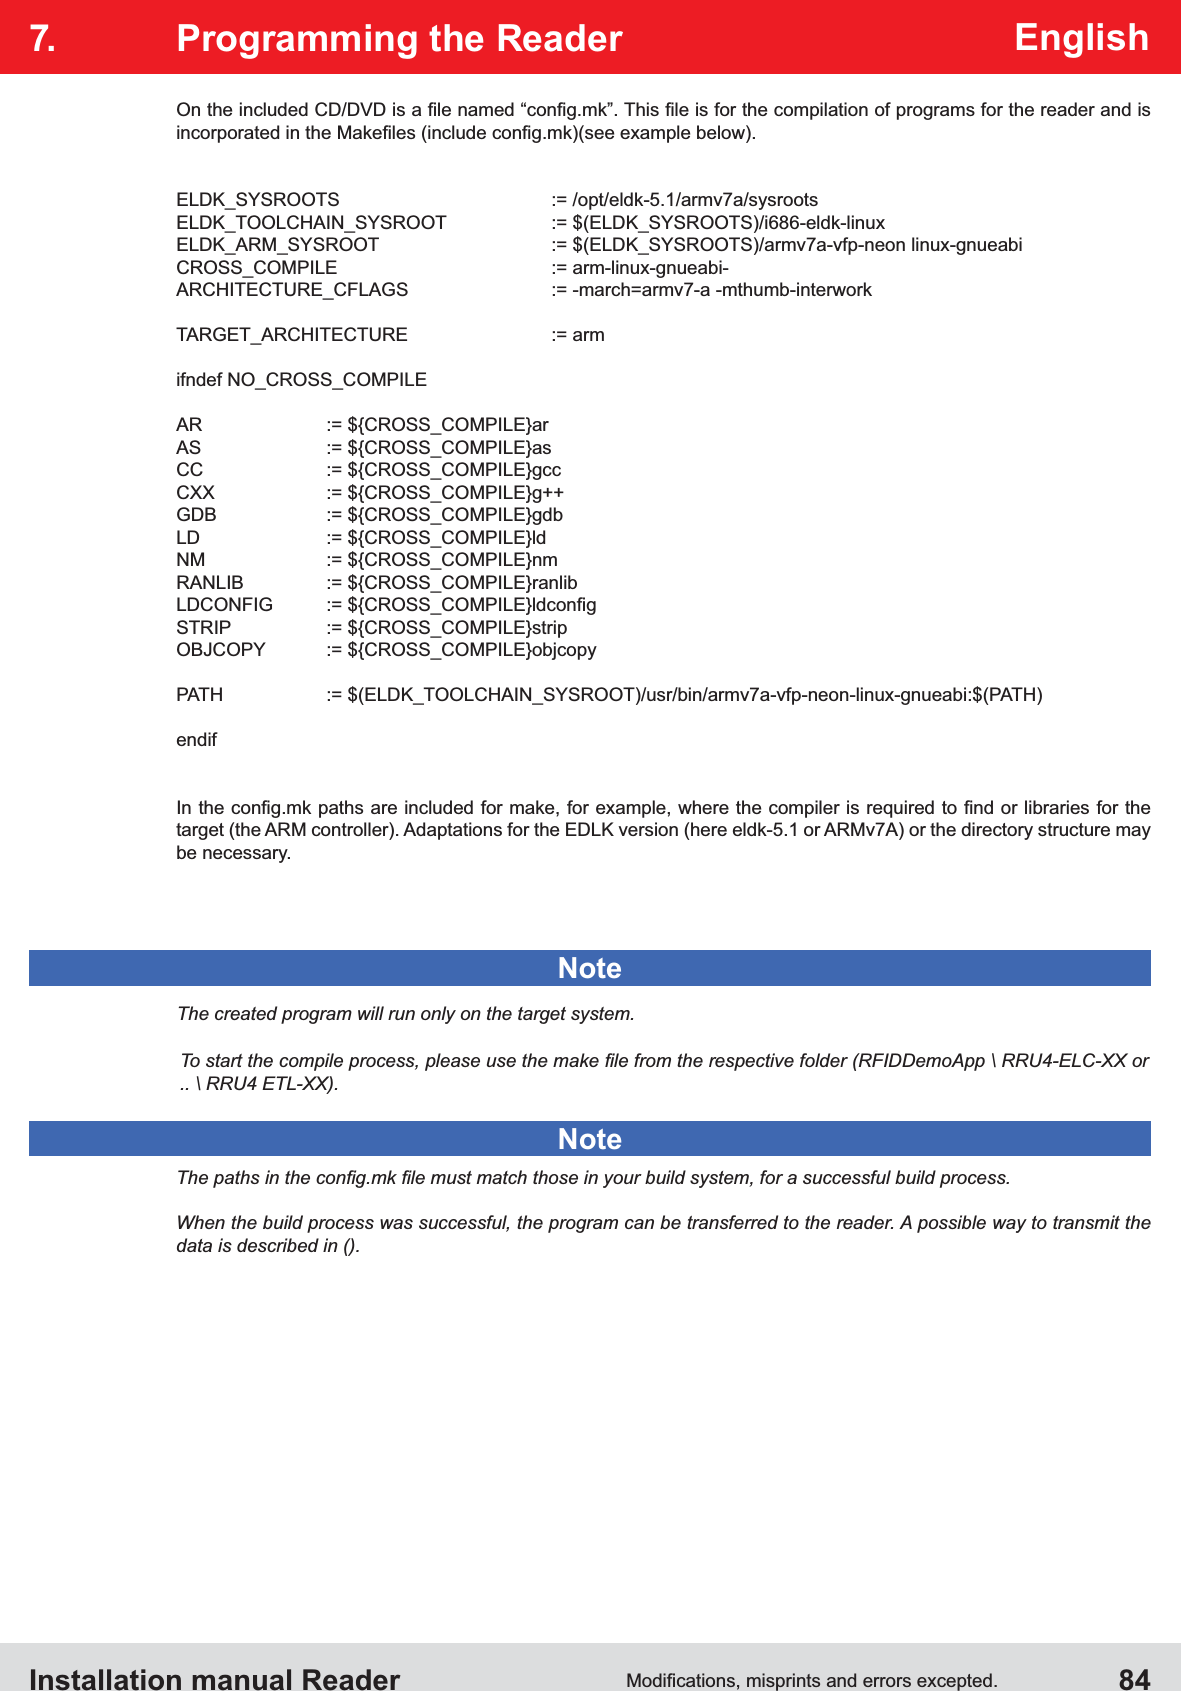 Installation manual Reader  84English7.  Programming the Reader        CROSS_COMPILE    := arm-linux-gnueabi-ARCHITECTURE_CFLAGS     := -march=armv7-a -mthumb-interworkTARGET_ARCHITECTURE     := armifndef NO_CROSS_COMPILE                     endiftarget (the ARM controller). Adaptations for the EDLK version (here eldk-5.1 or ARMv7A) or the directory structure may be necessary.NoteThe created program will run only on the target system.NoteWhen the build process was successful, the program can be transferred to the reader. A possible way to transmit the data is described in ().